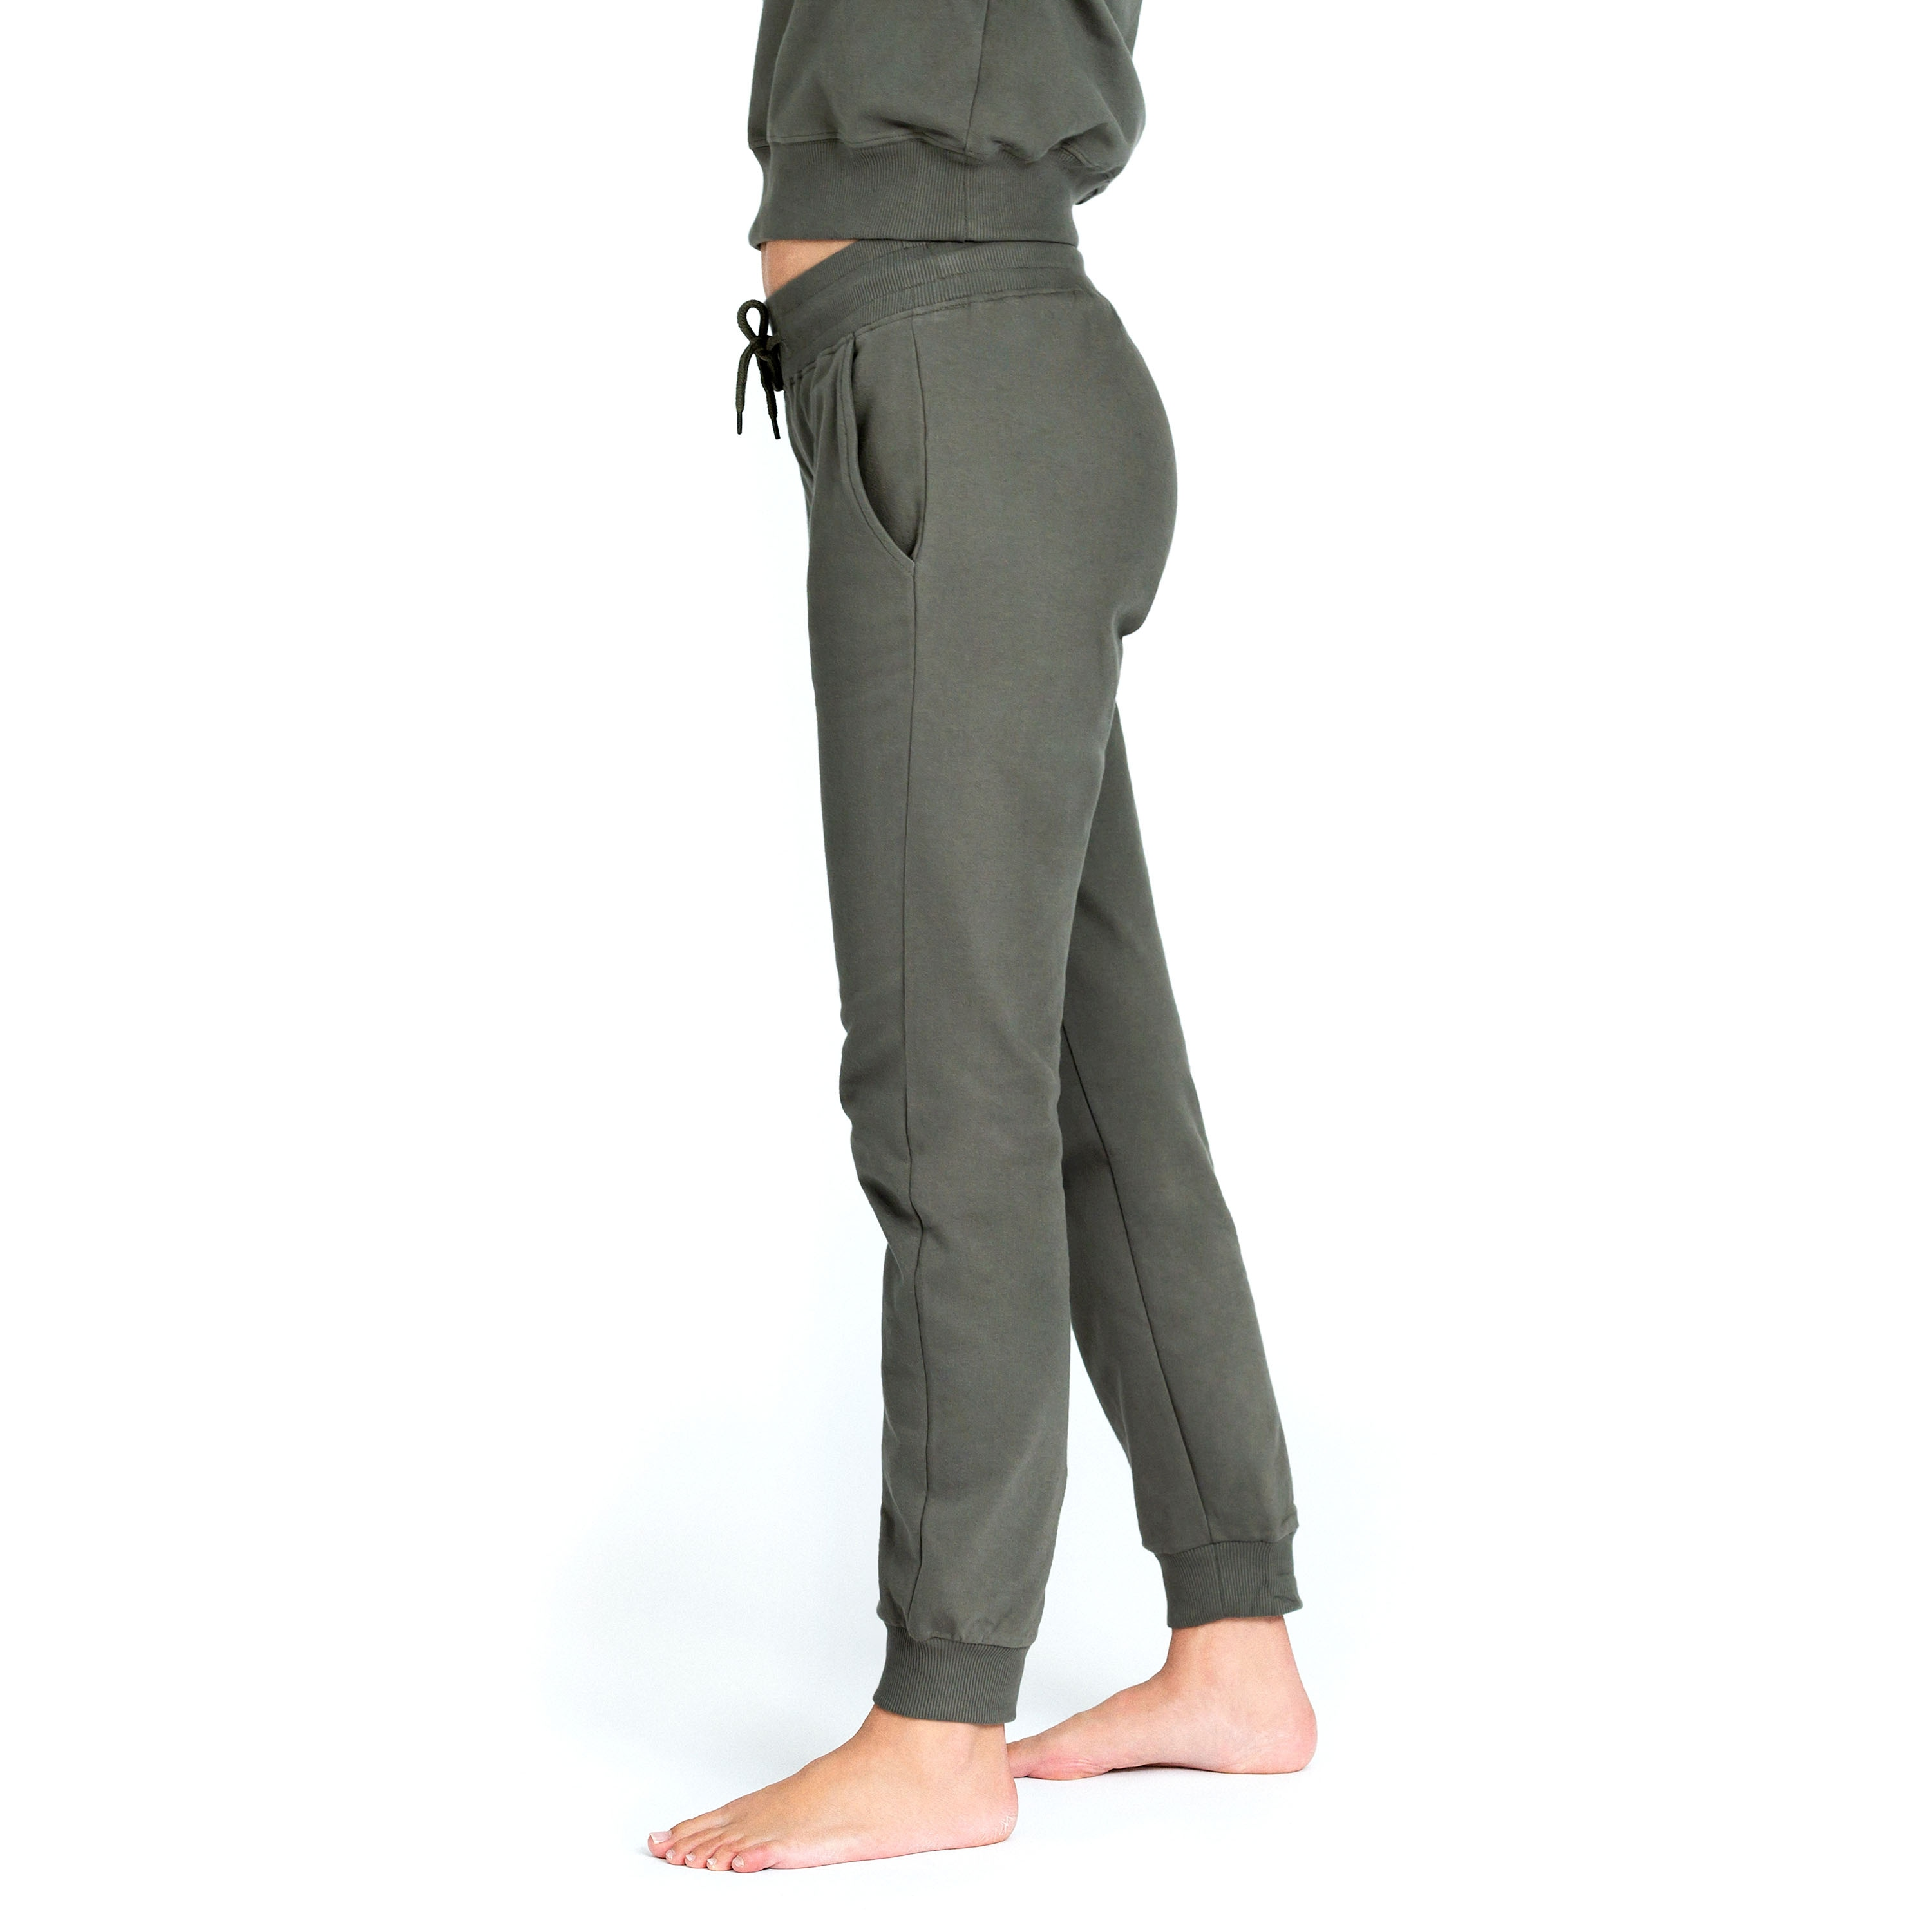 637-40_Lounge-Pant_olive-green_2